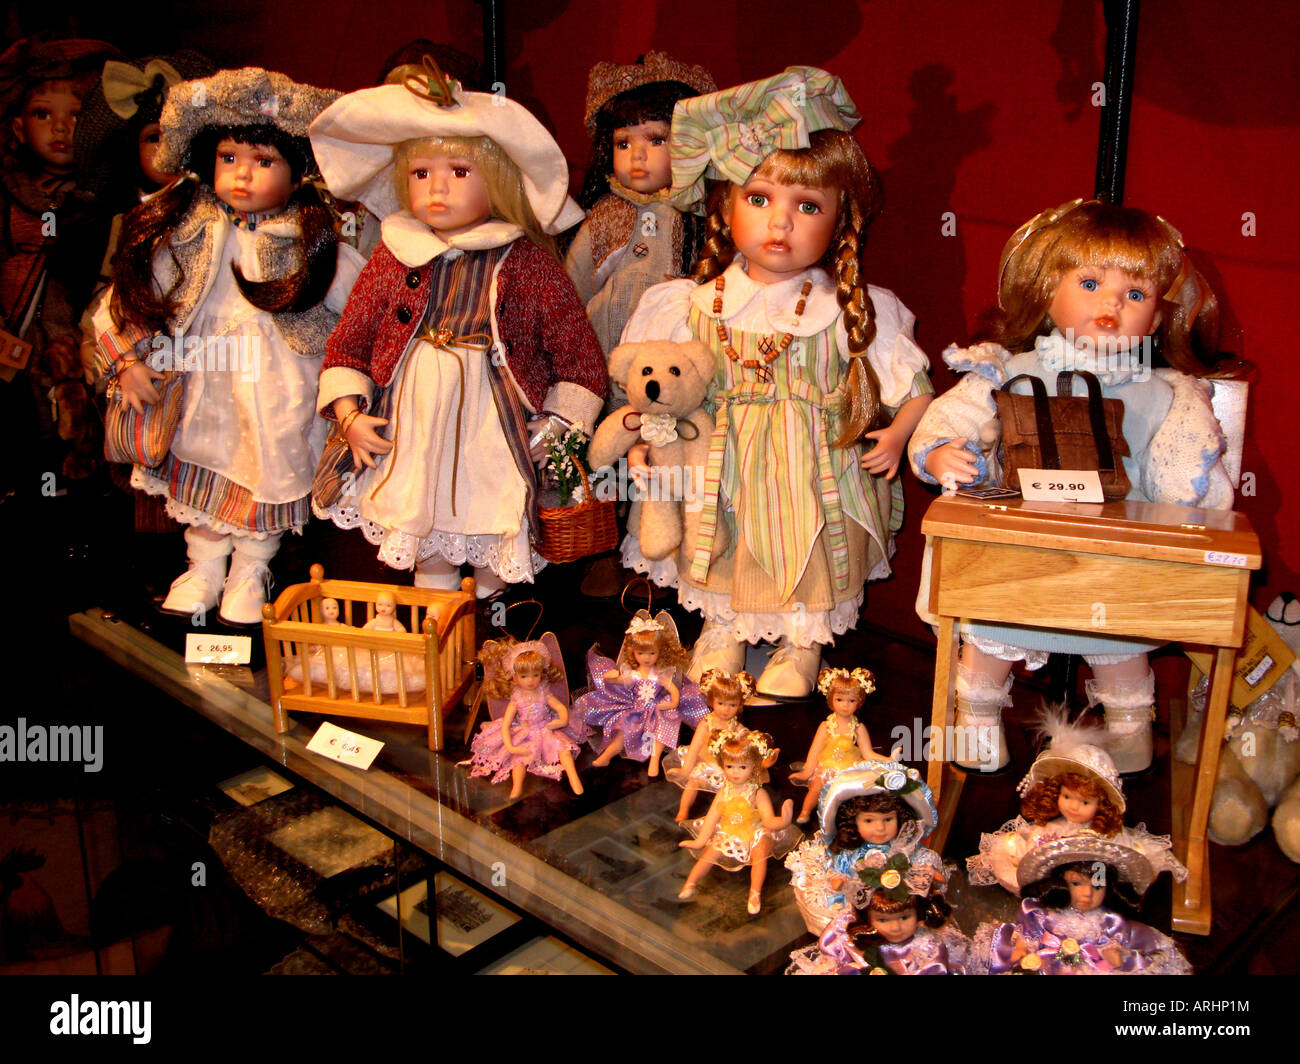 Spirit Doll Stock Photos & Spirit Doll Stock Images - Alamy